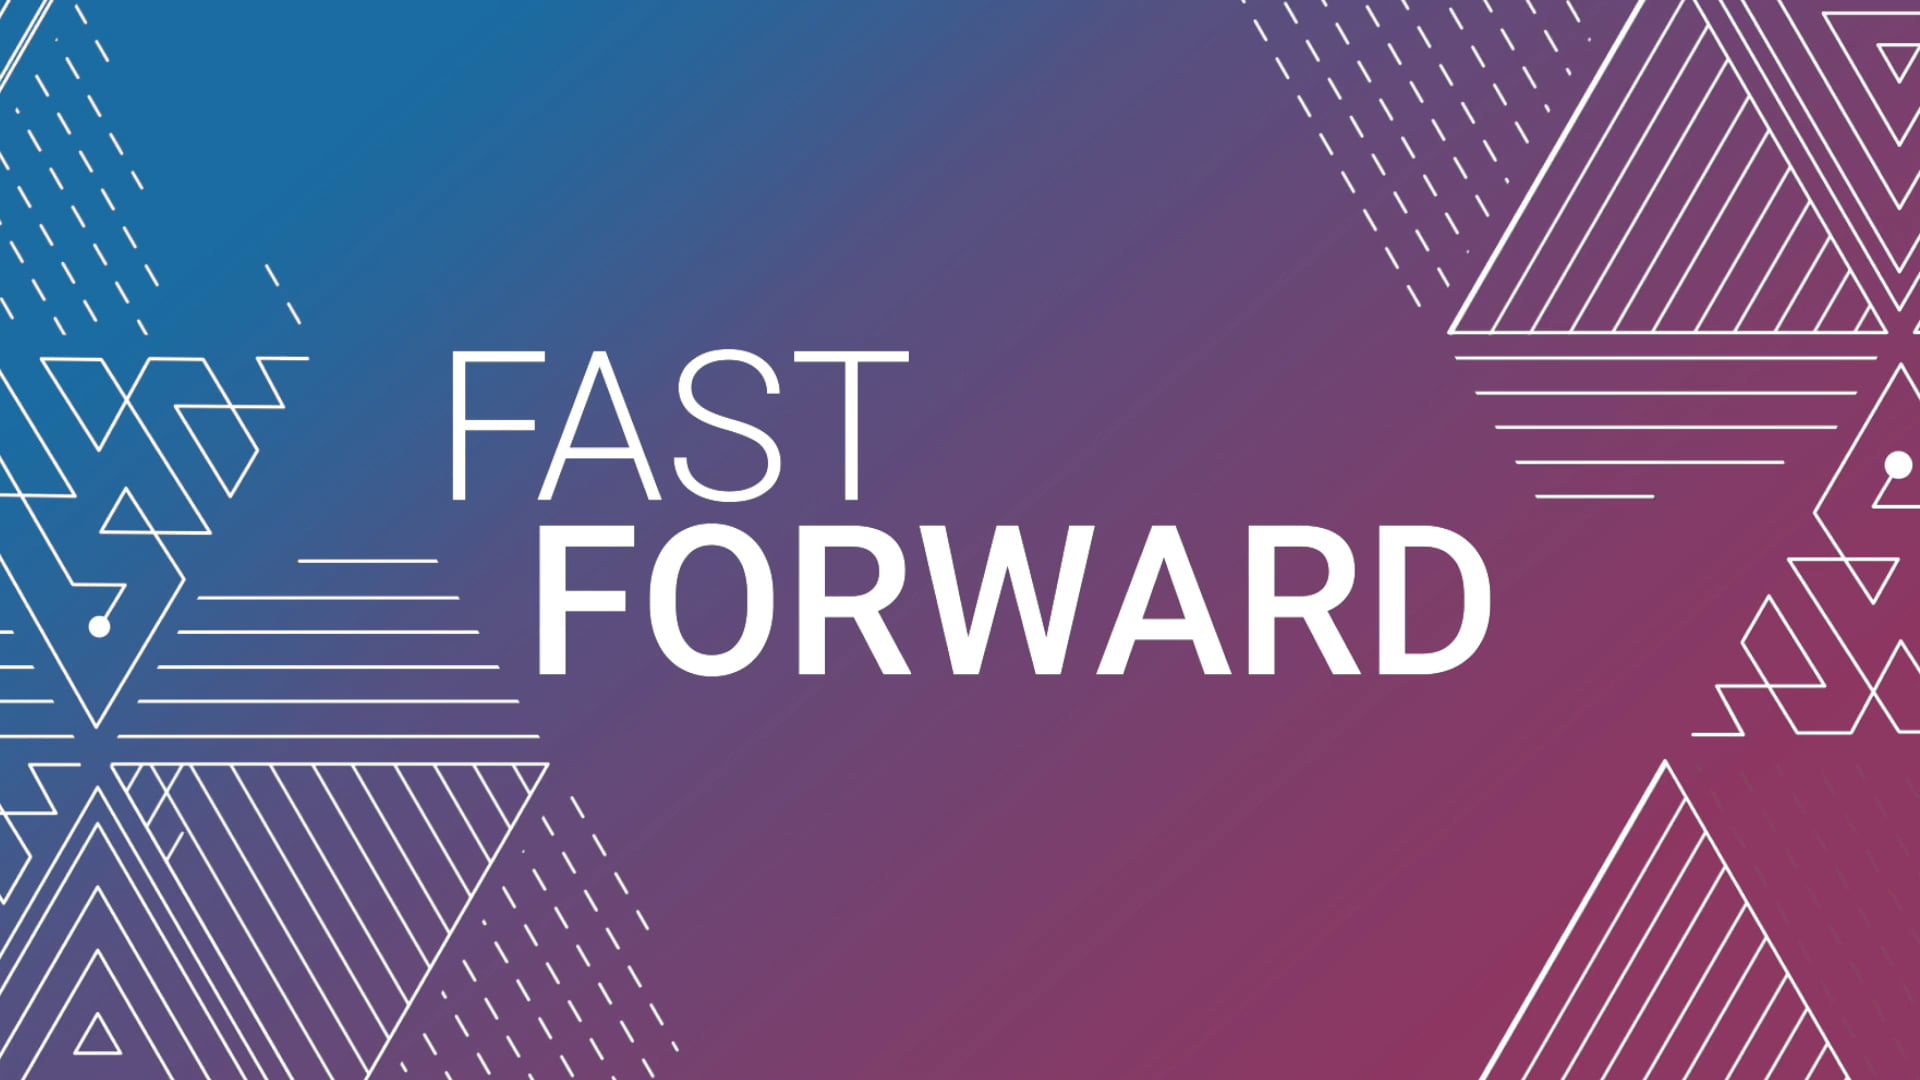 Fast Forward Series - 5G is the Future